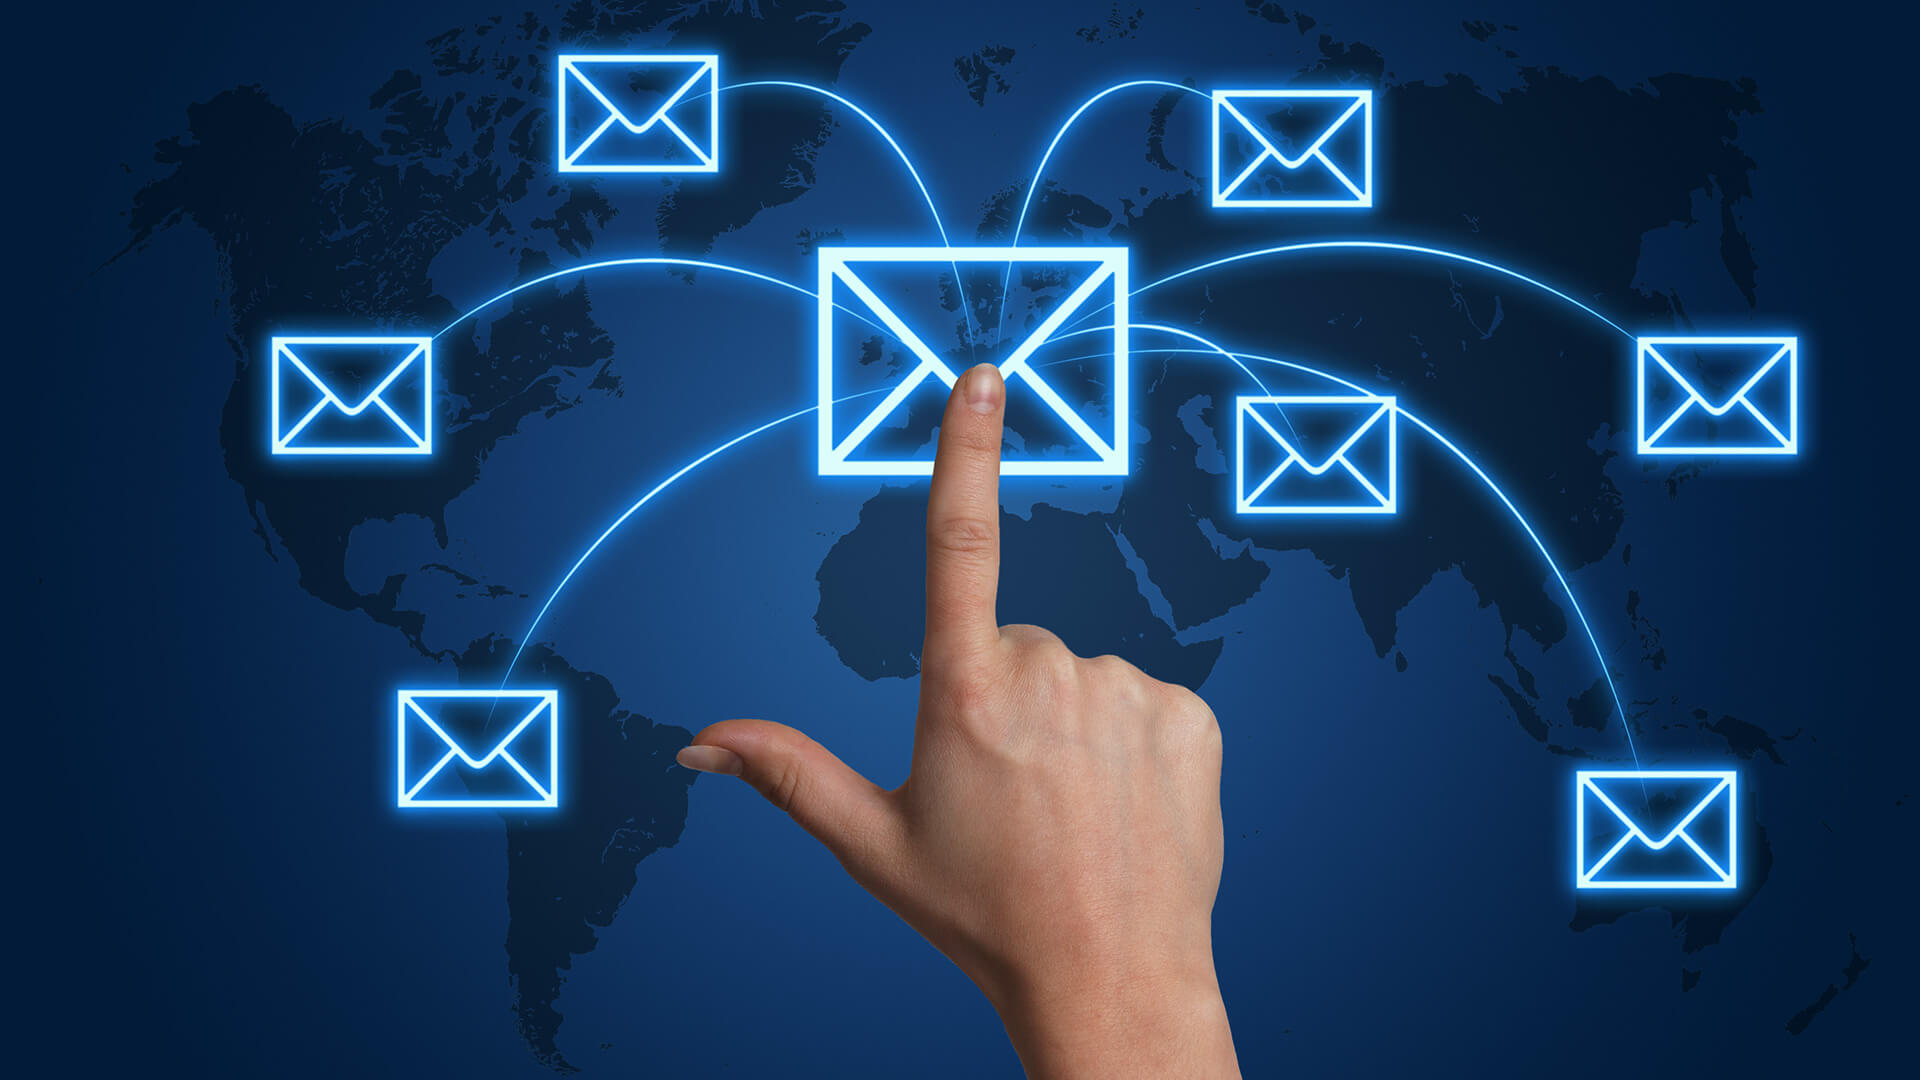 Come creare una email di marketing per vendere